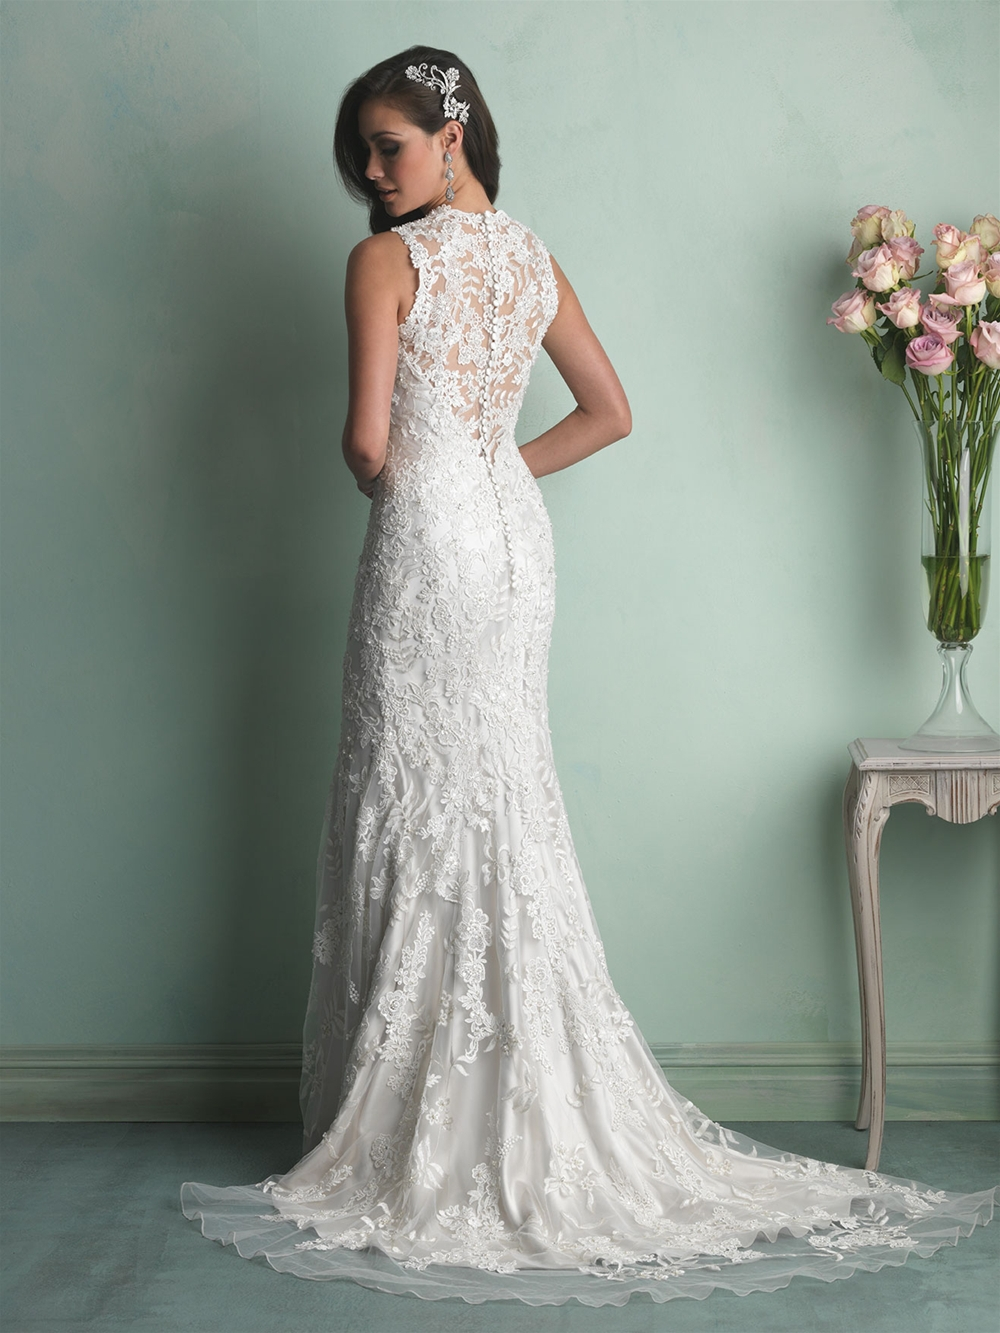 Old Fashioned Wedding Dresses Black High Neck To Wear A S Style Dress Mermaid Floor Length Sweep Brush Train Liqu 2017 Outlet In From